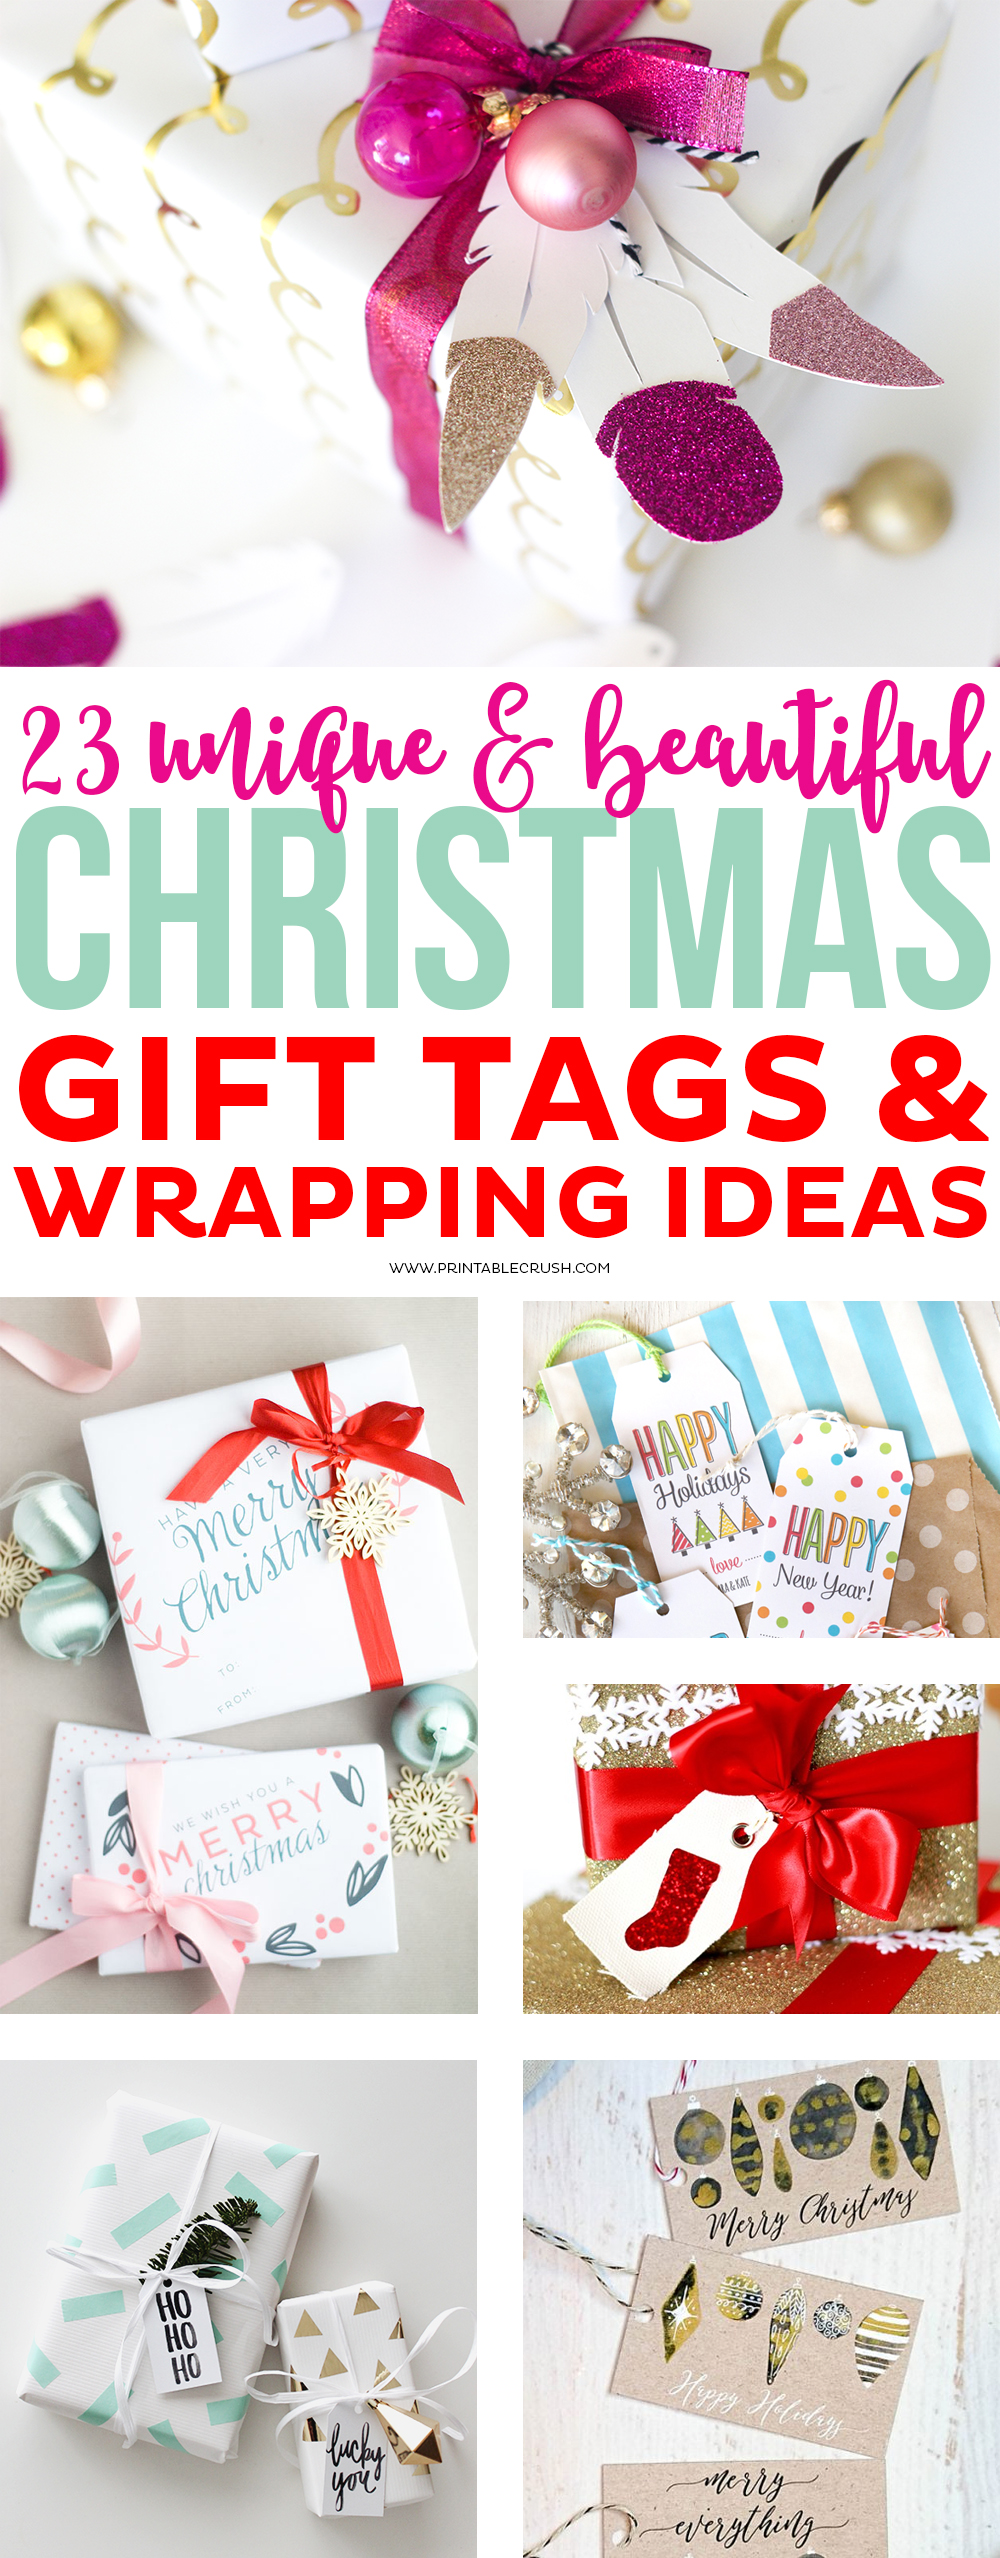 23 Unique Christmas Gift Tags and Wrapping Ideas! - Printable Crush